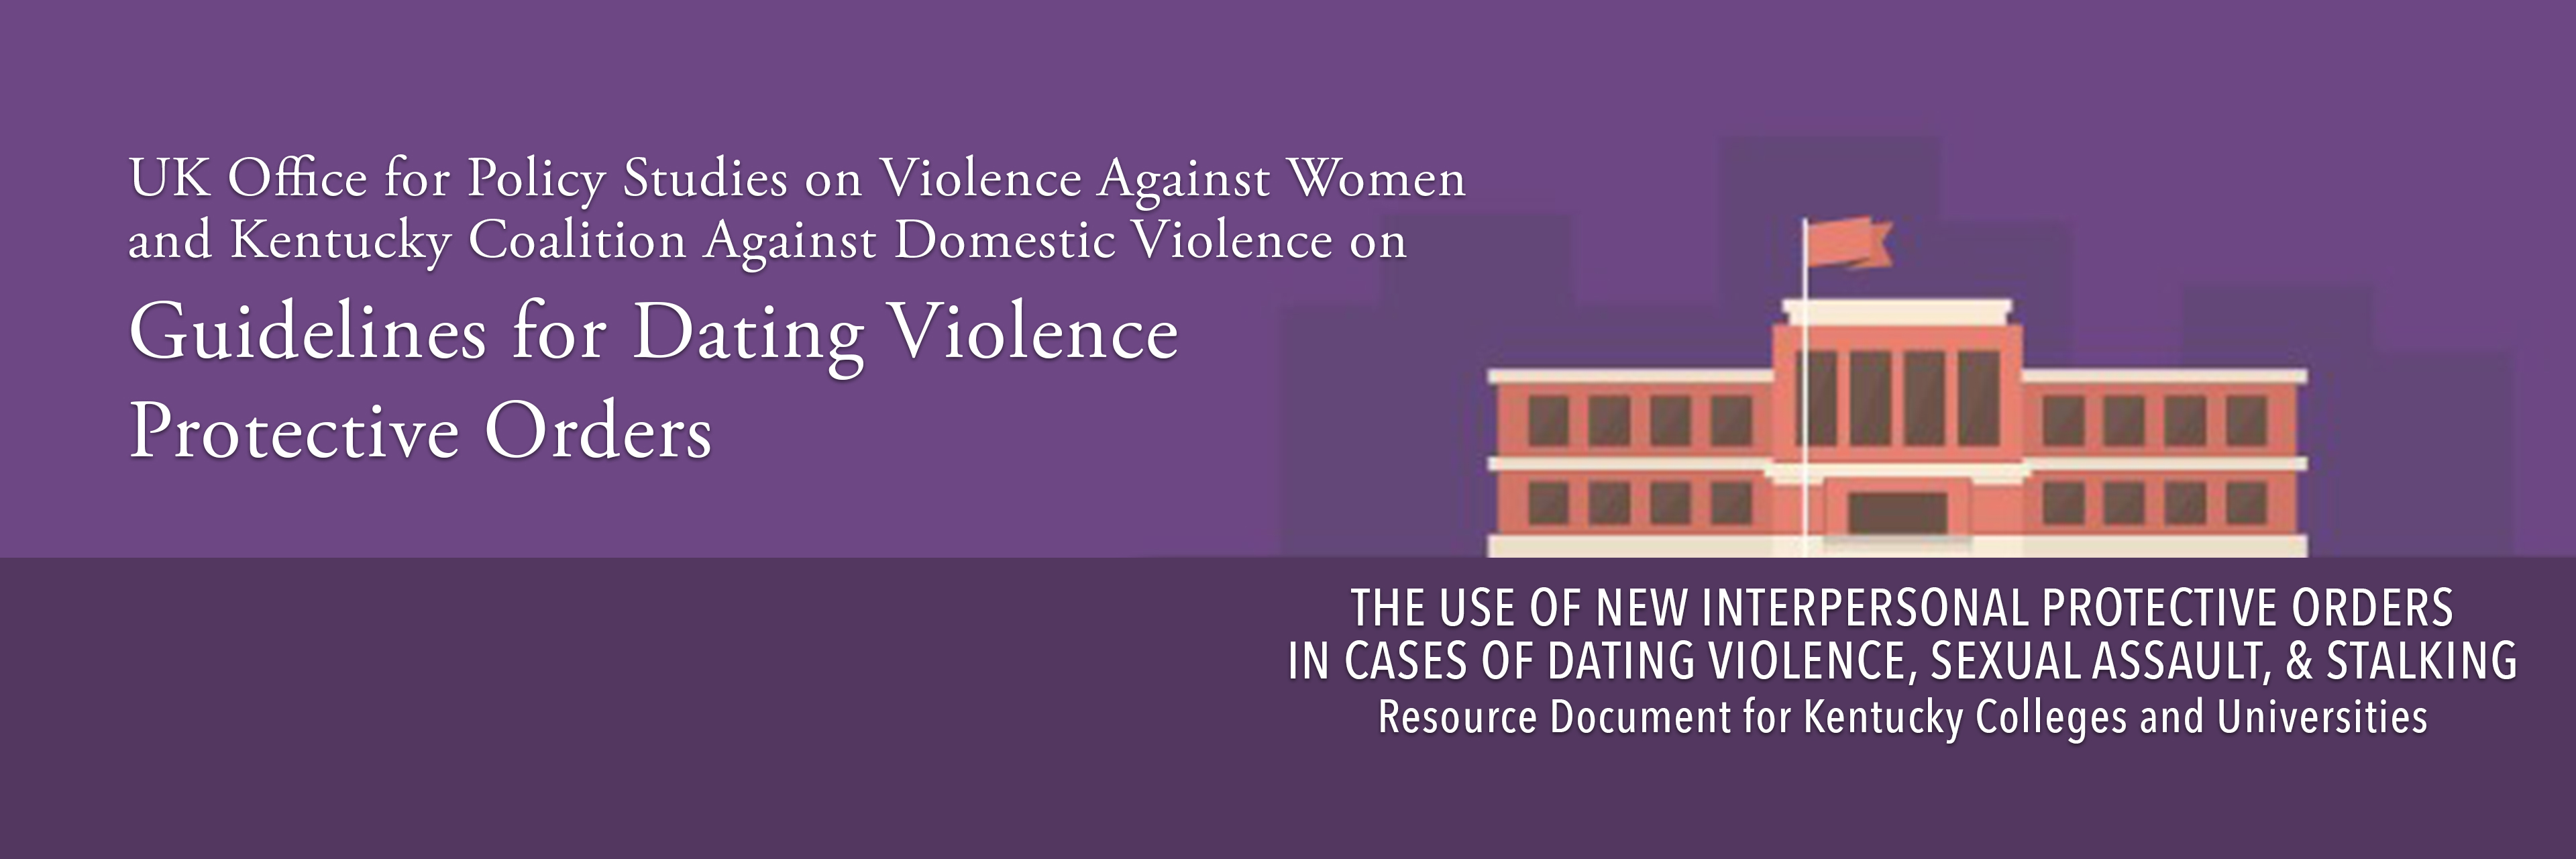 policy studies on violence against women